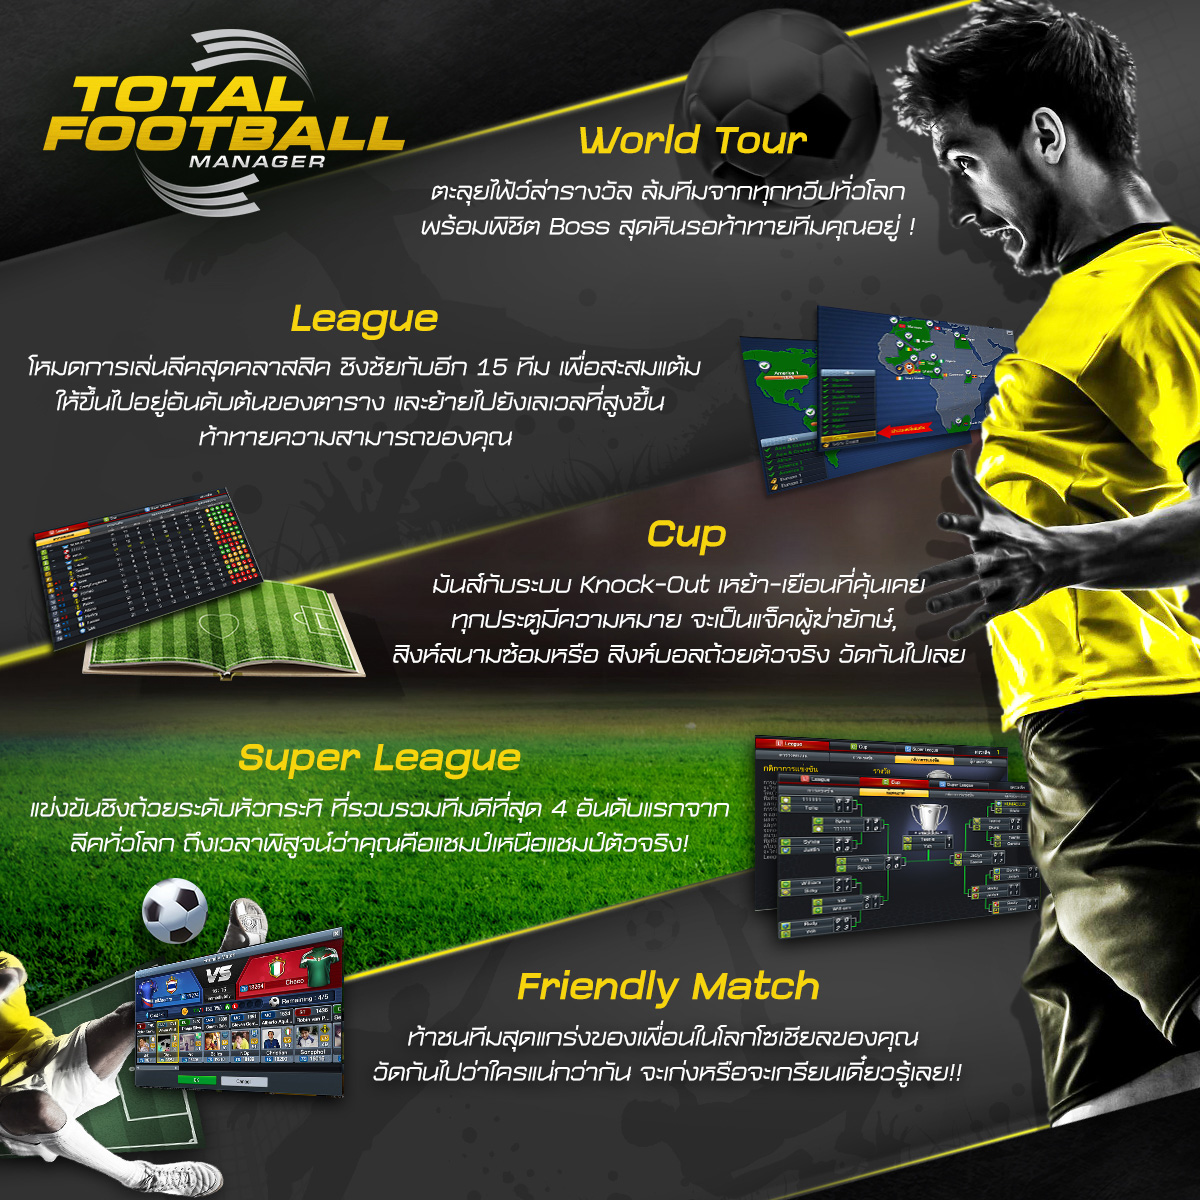 totalfootball_design